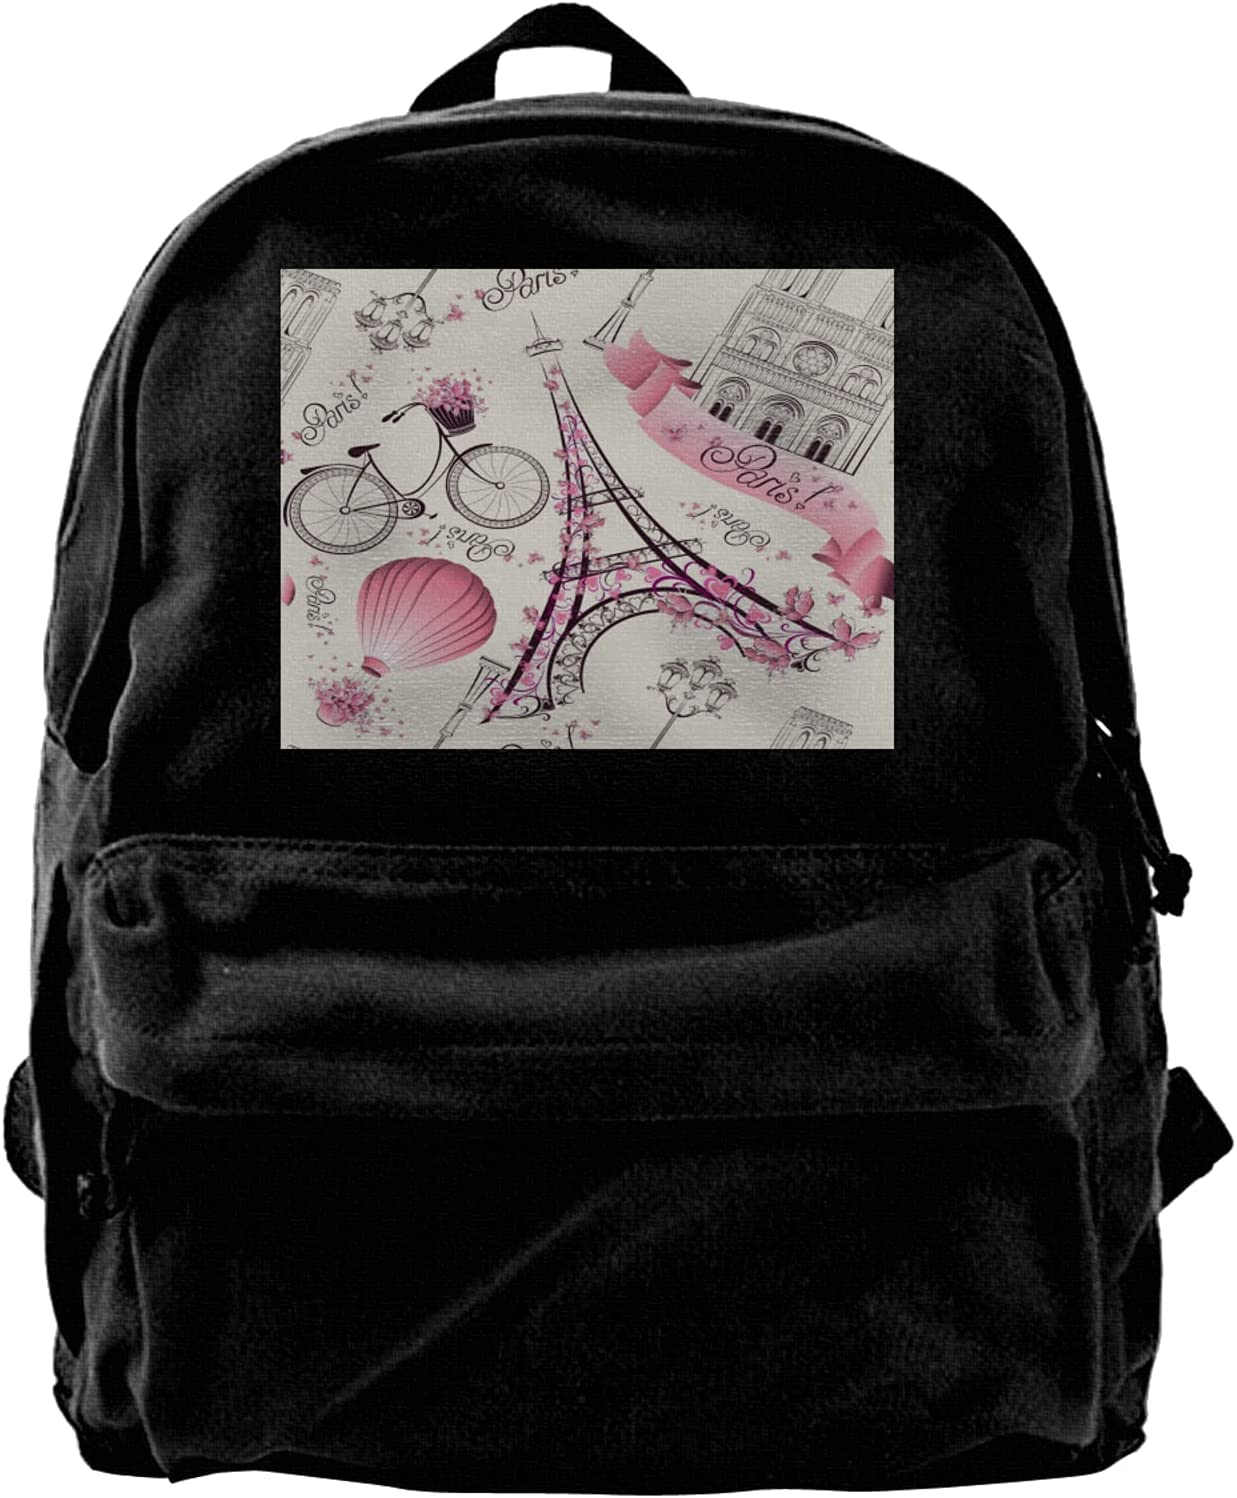 Eiffel Tower In Paris Fort Worth Mall Backpack For National uniform free shipping Men Fo Laptop Travel